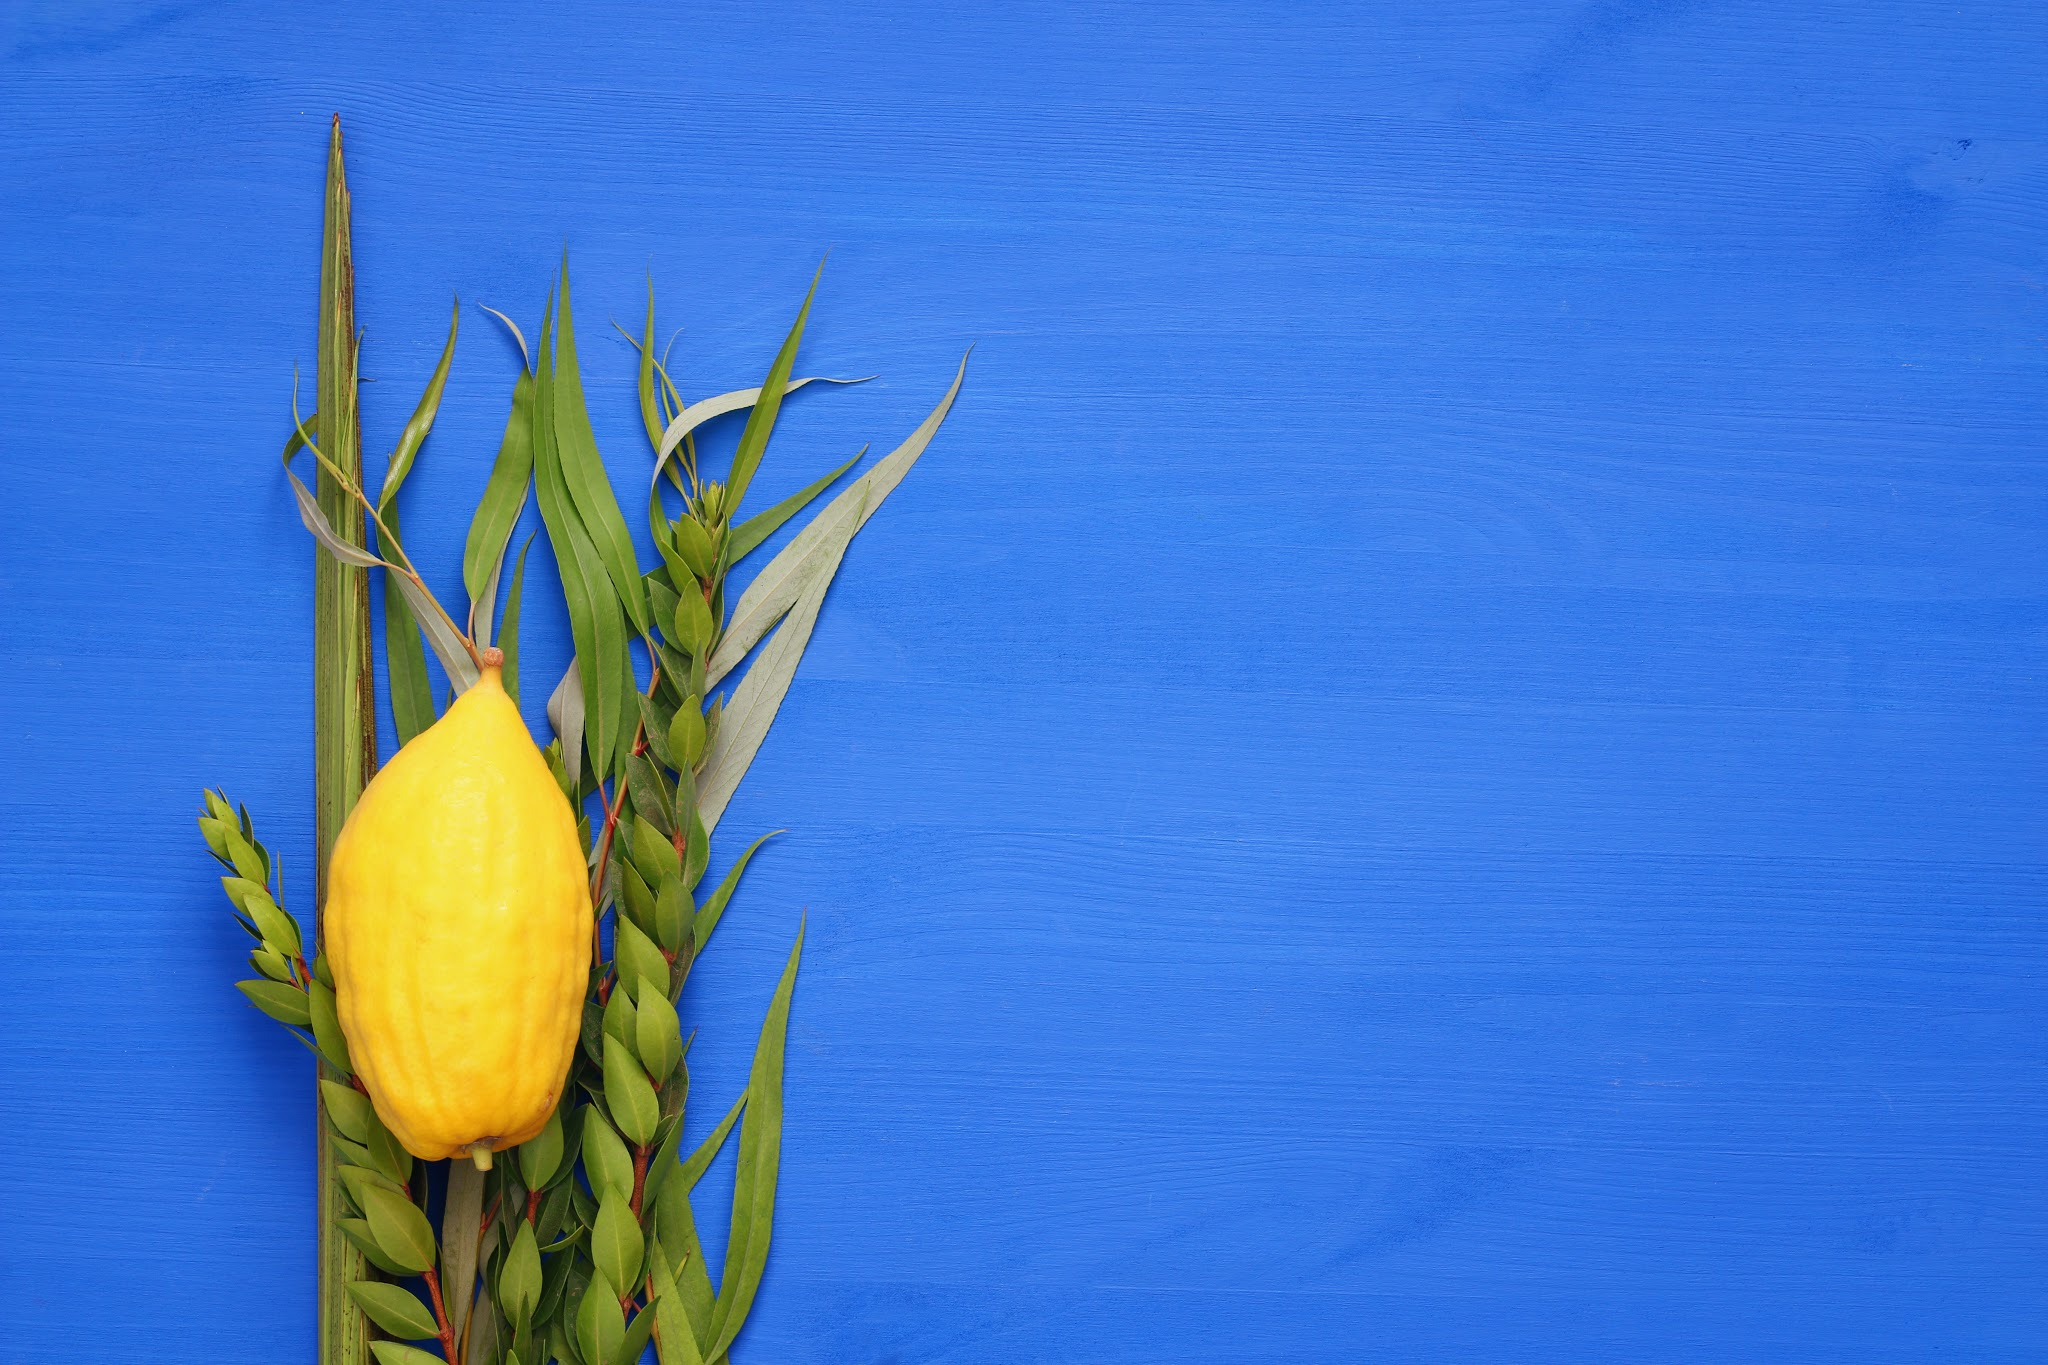 Join us in the sukkah during this joyous harvest holiday.